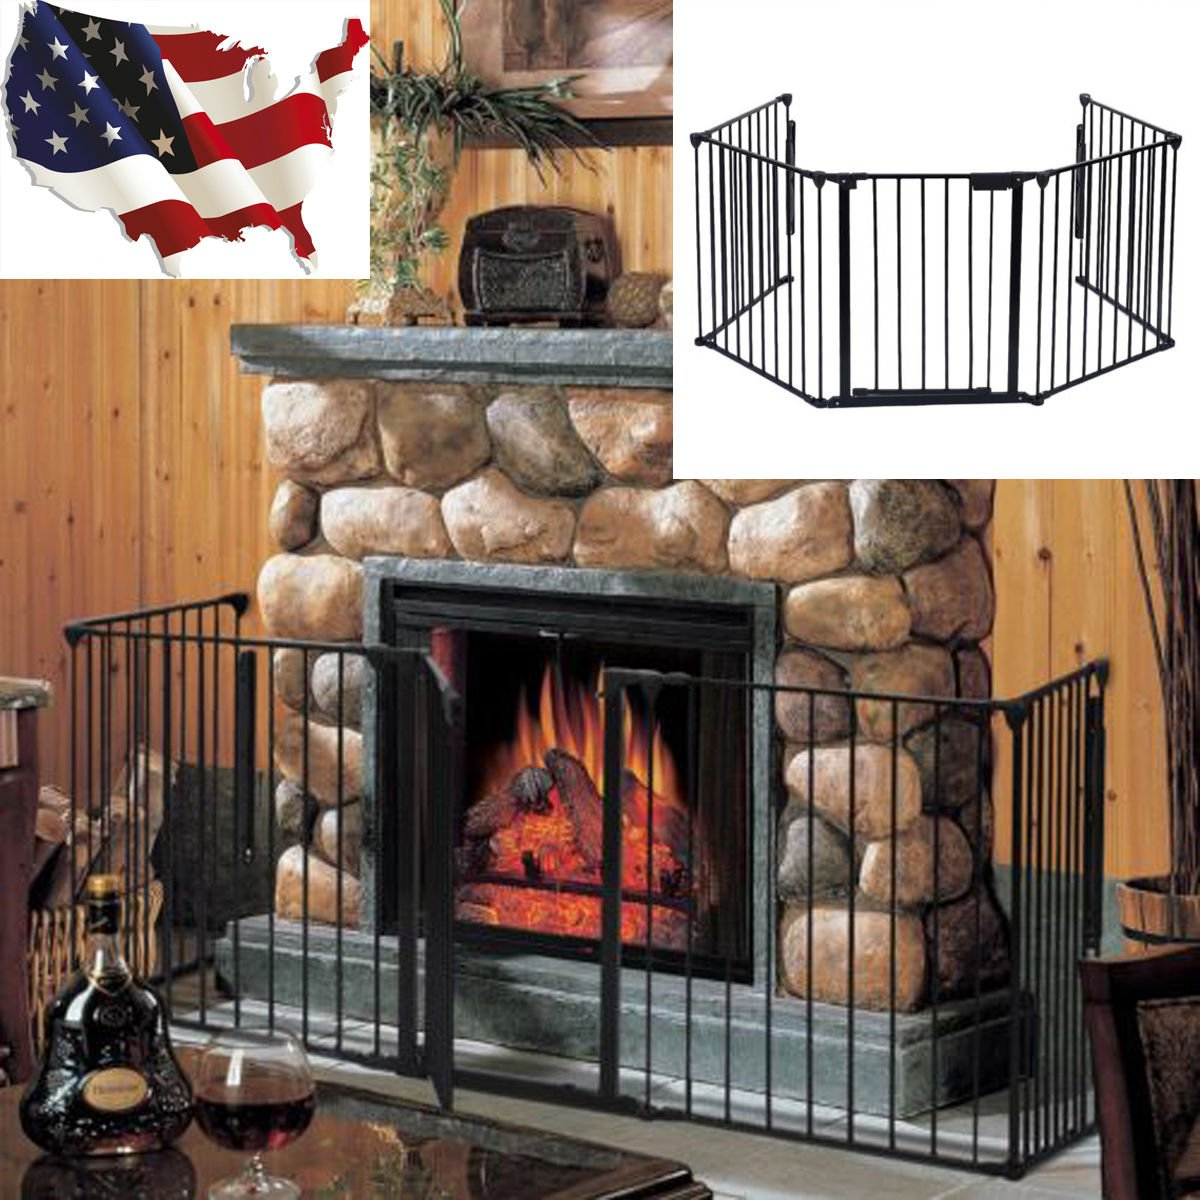 Amazon.com : Fireplace Fence Baby Safety Fence Hearth Gate BBQ Metal Fire Gate Pet Dog Cat : Baby